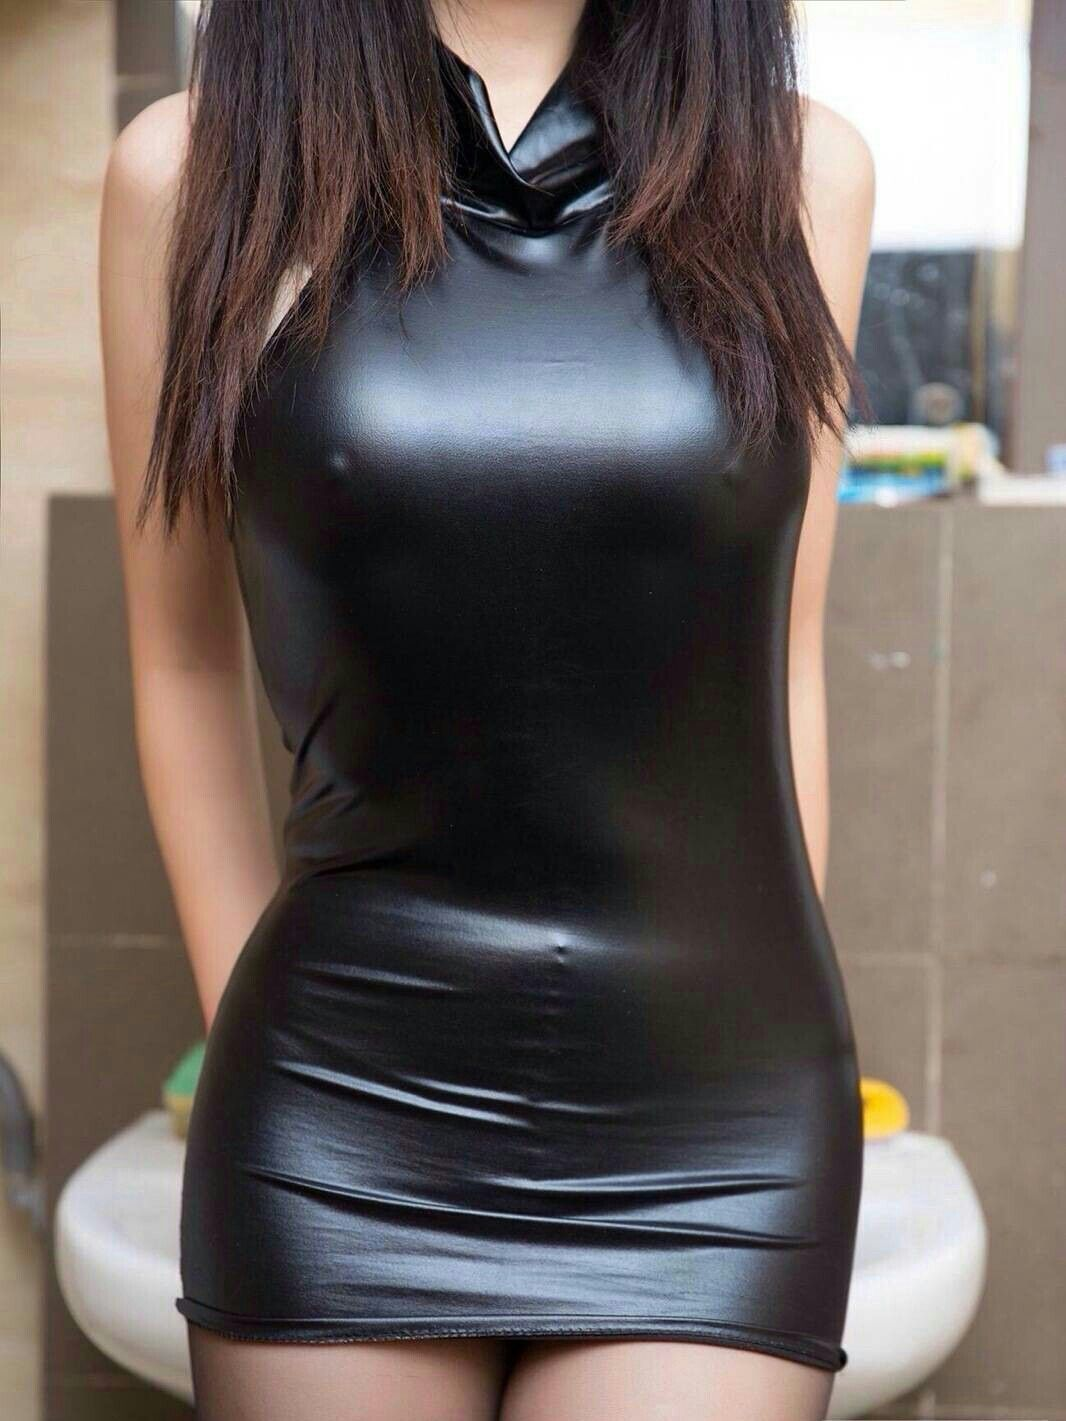 d23828cb28f 💋HER IN LEATHER YASS ❕❕